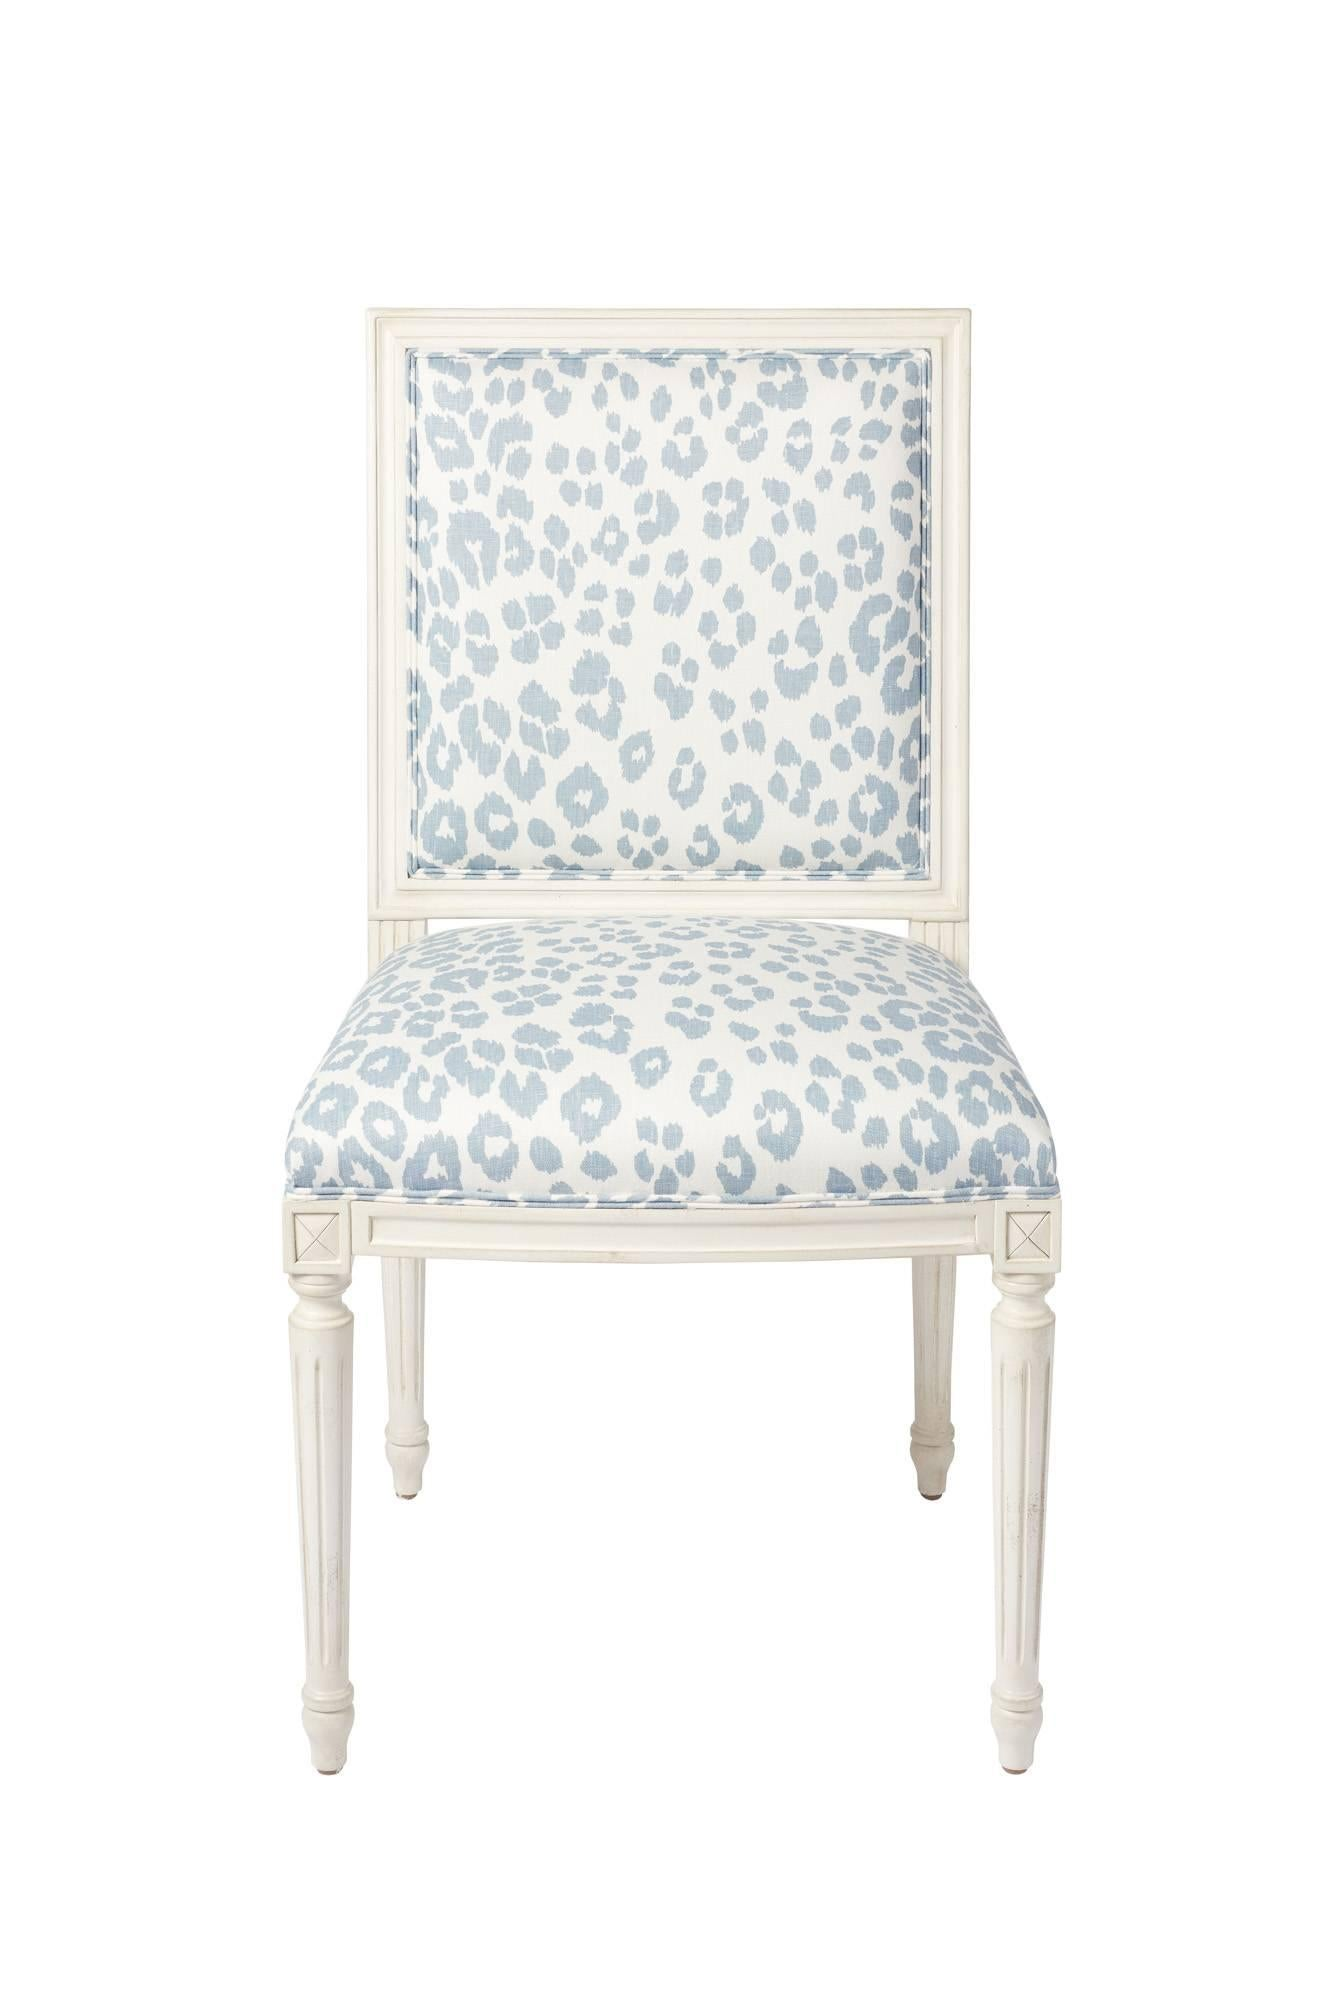 Schumacher Marie Therese Iconic Leopard Blue Hand Carved Beechwood Side  Chair For Sale At 1stdibs